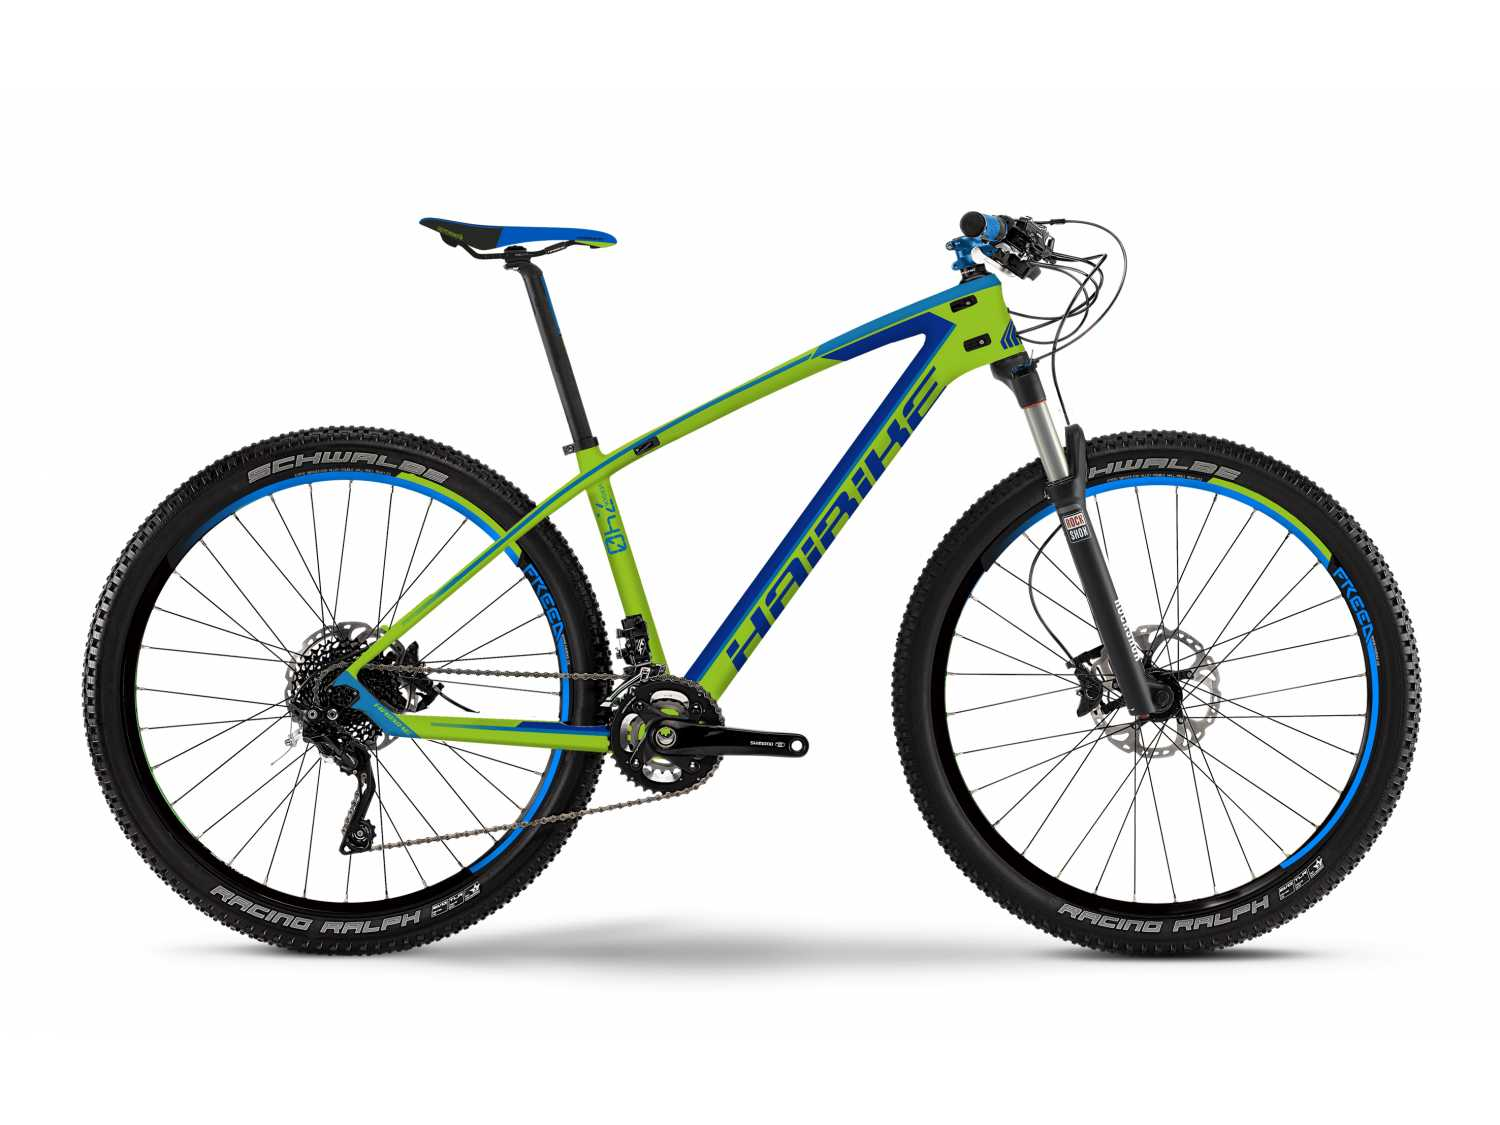 VTT Haibike Freed 7.40 27.5 2016